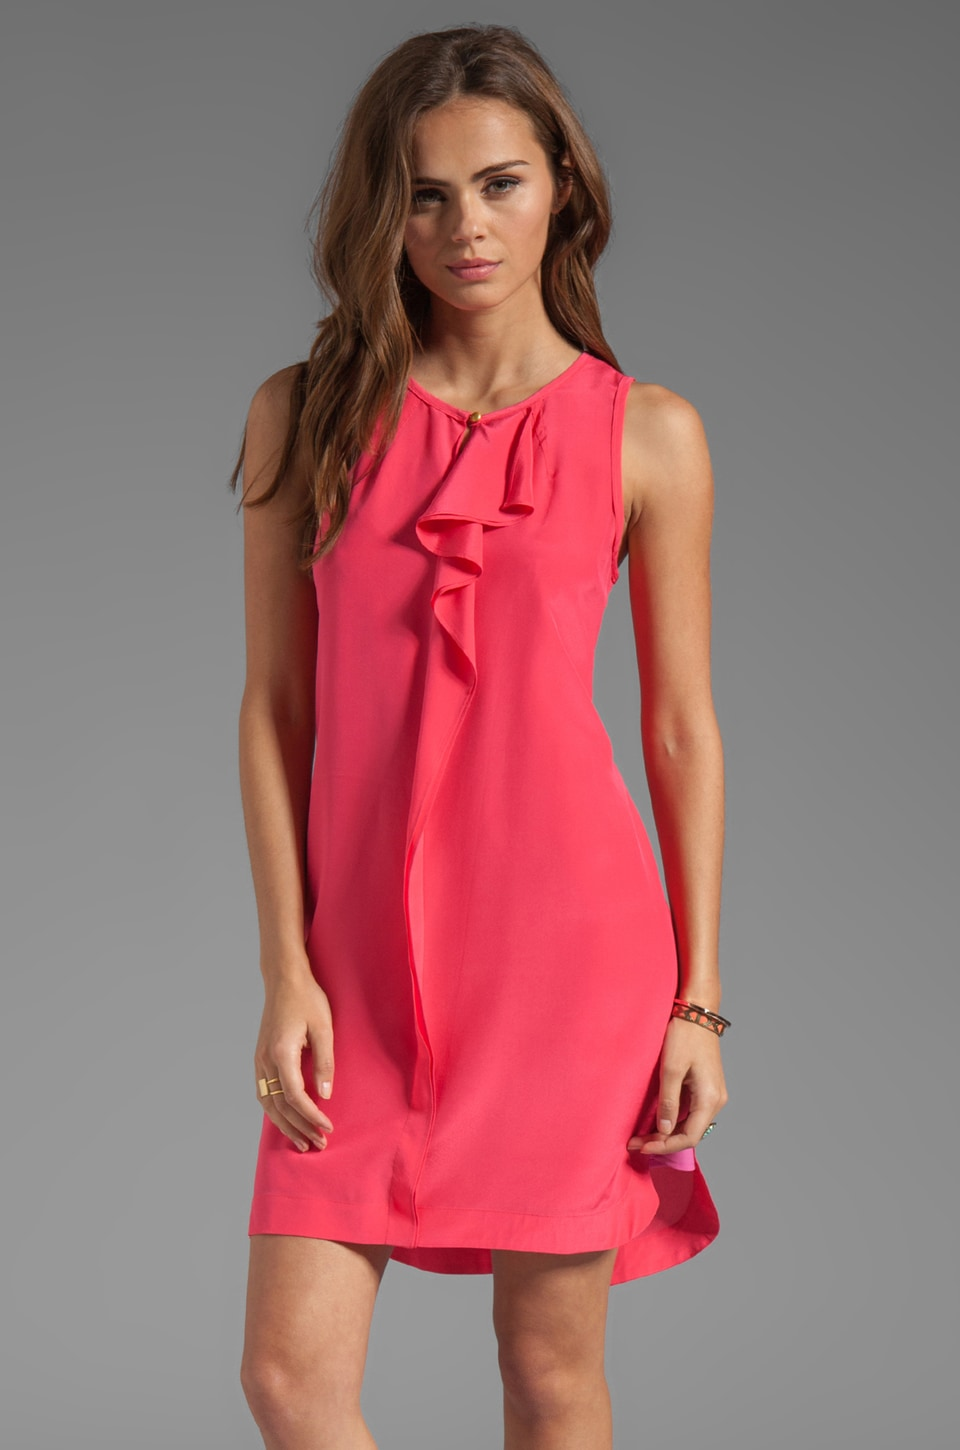 Marc by Marc Jacobs Alex CDC Sleeveless Dress in Neon Pink